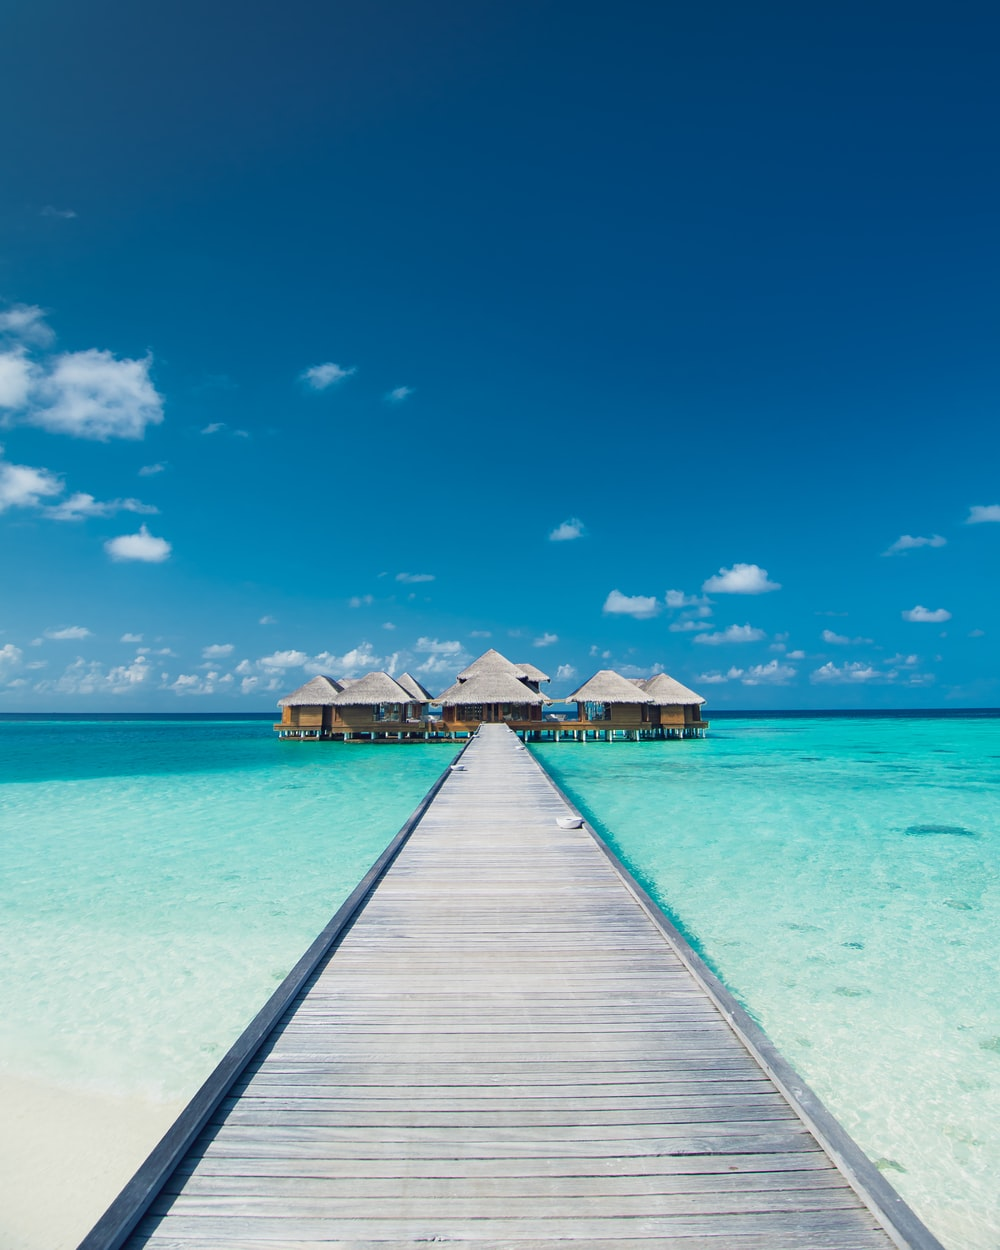 empty wooden dock on clear blue sea under clear blue sky during daytime